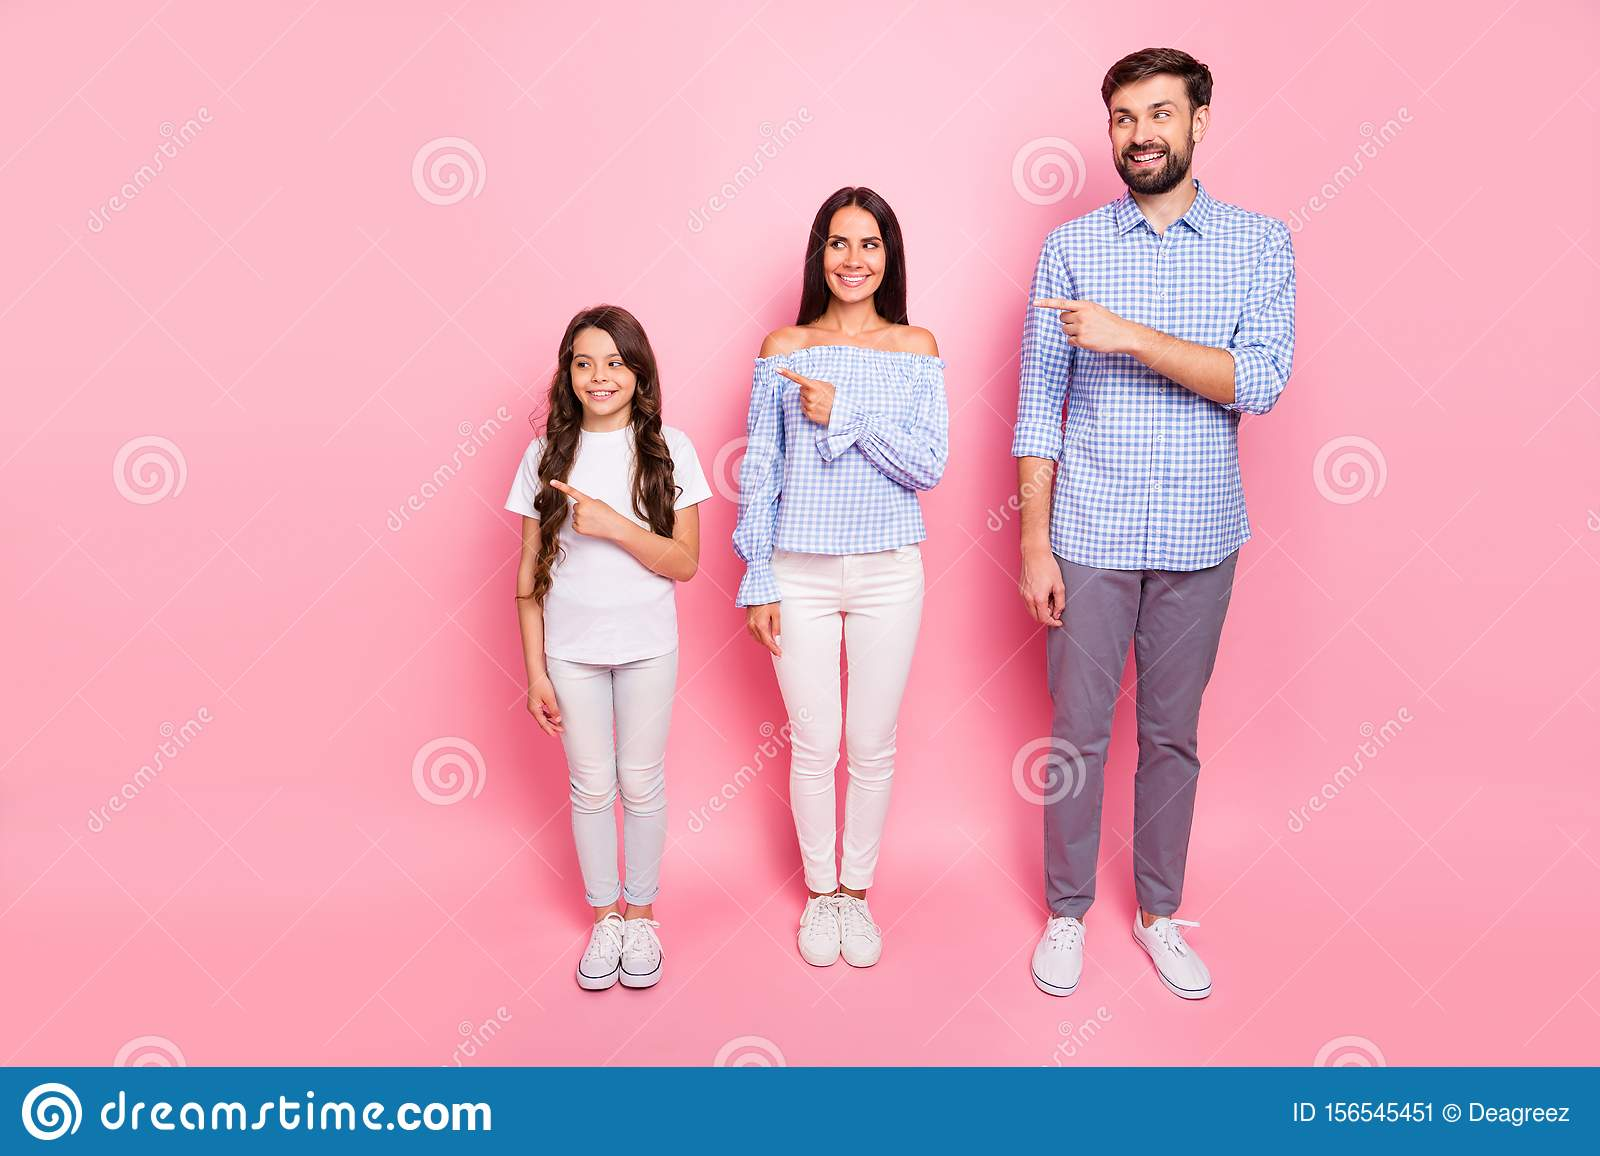 Full size photo of charming family with brunet hair pointing at copy space with beaming smile wearing plaid shirt